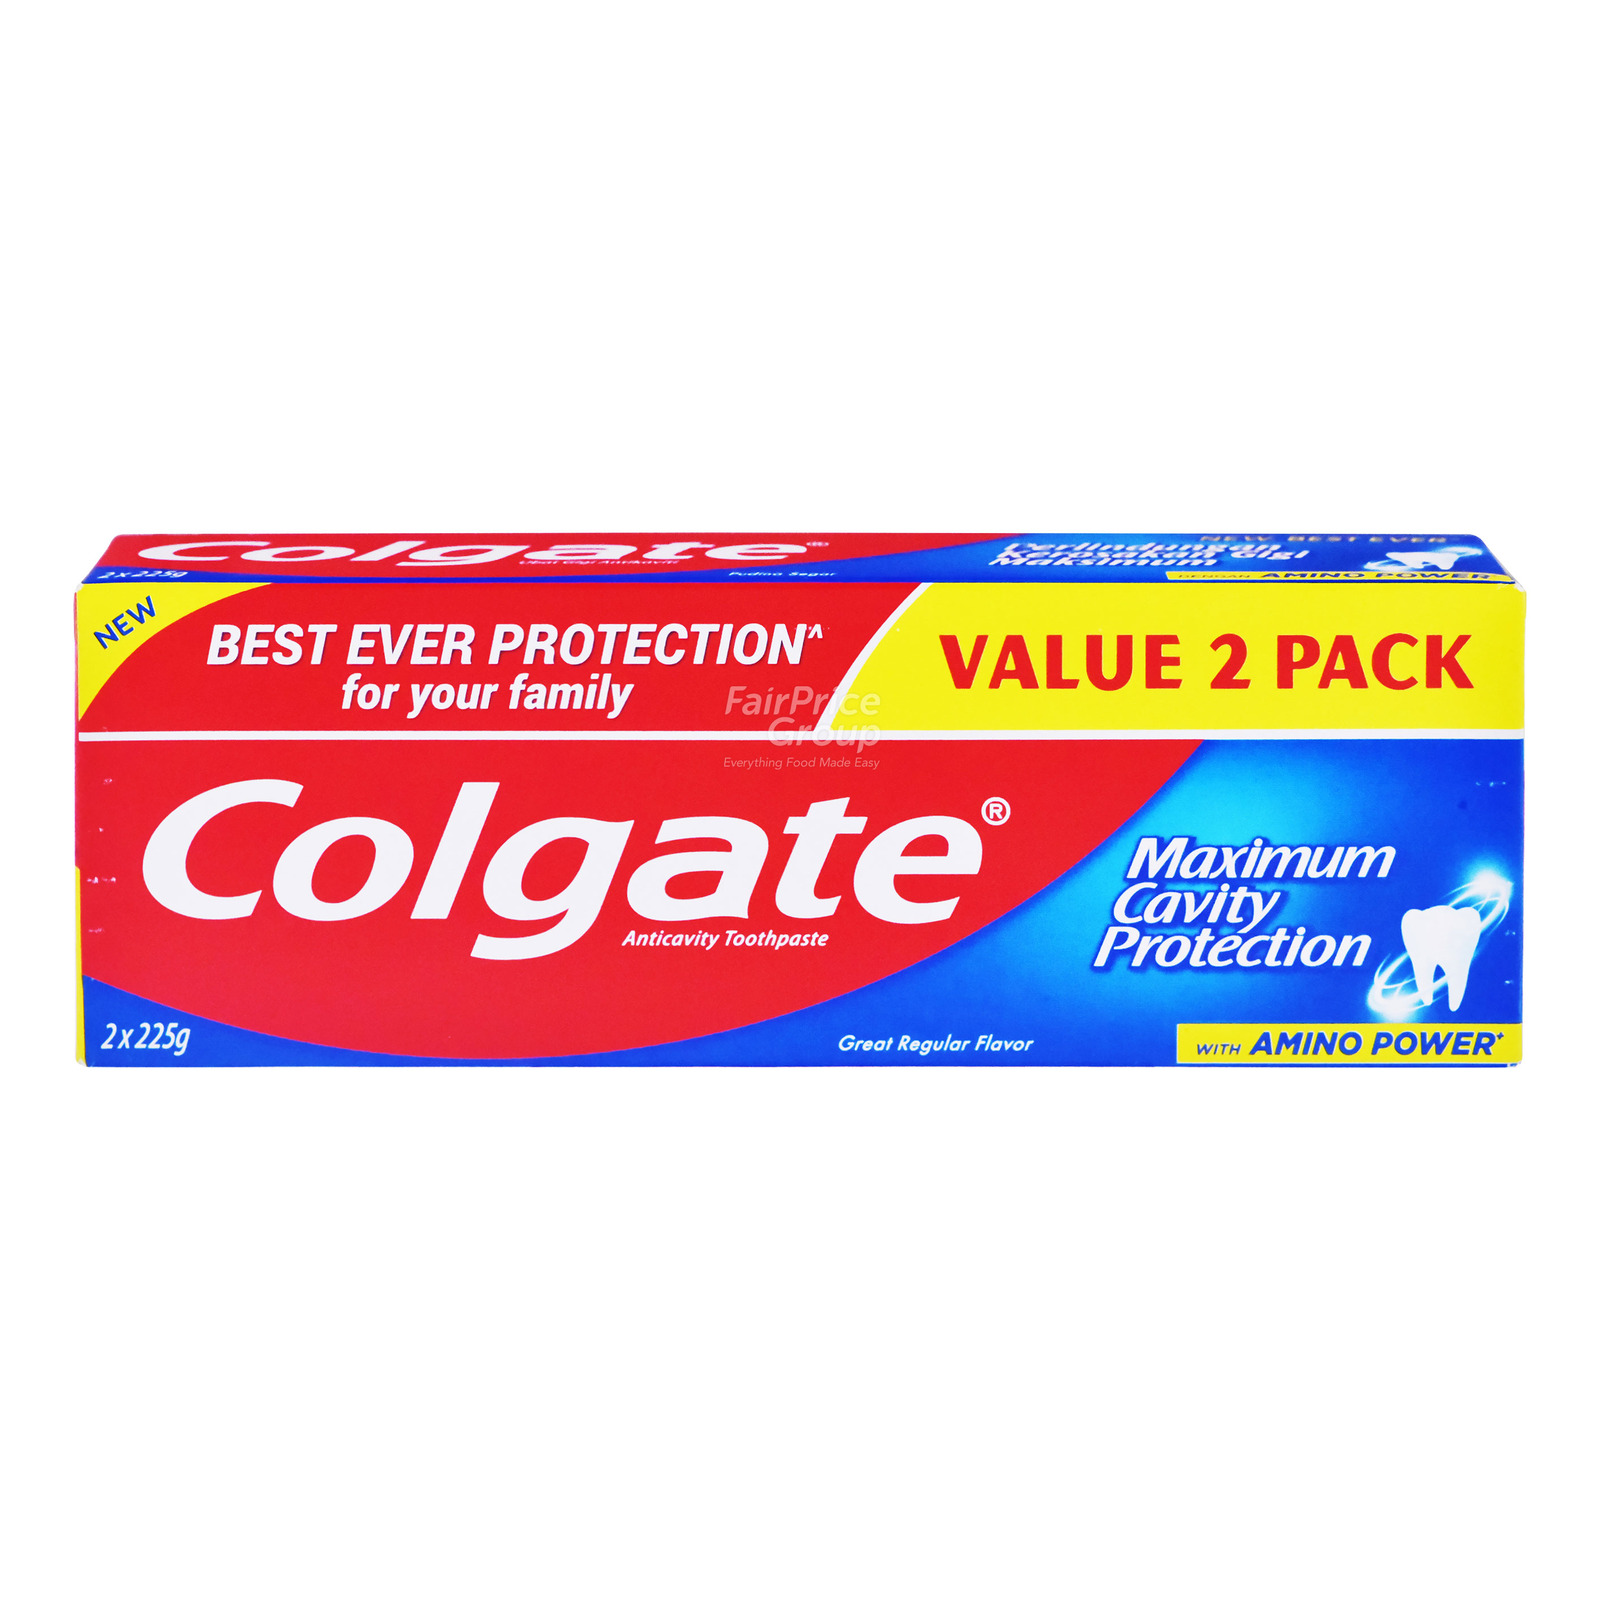 Colgate Maximum Cavity Protection Toothpaste - Great Regular